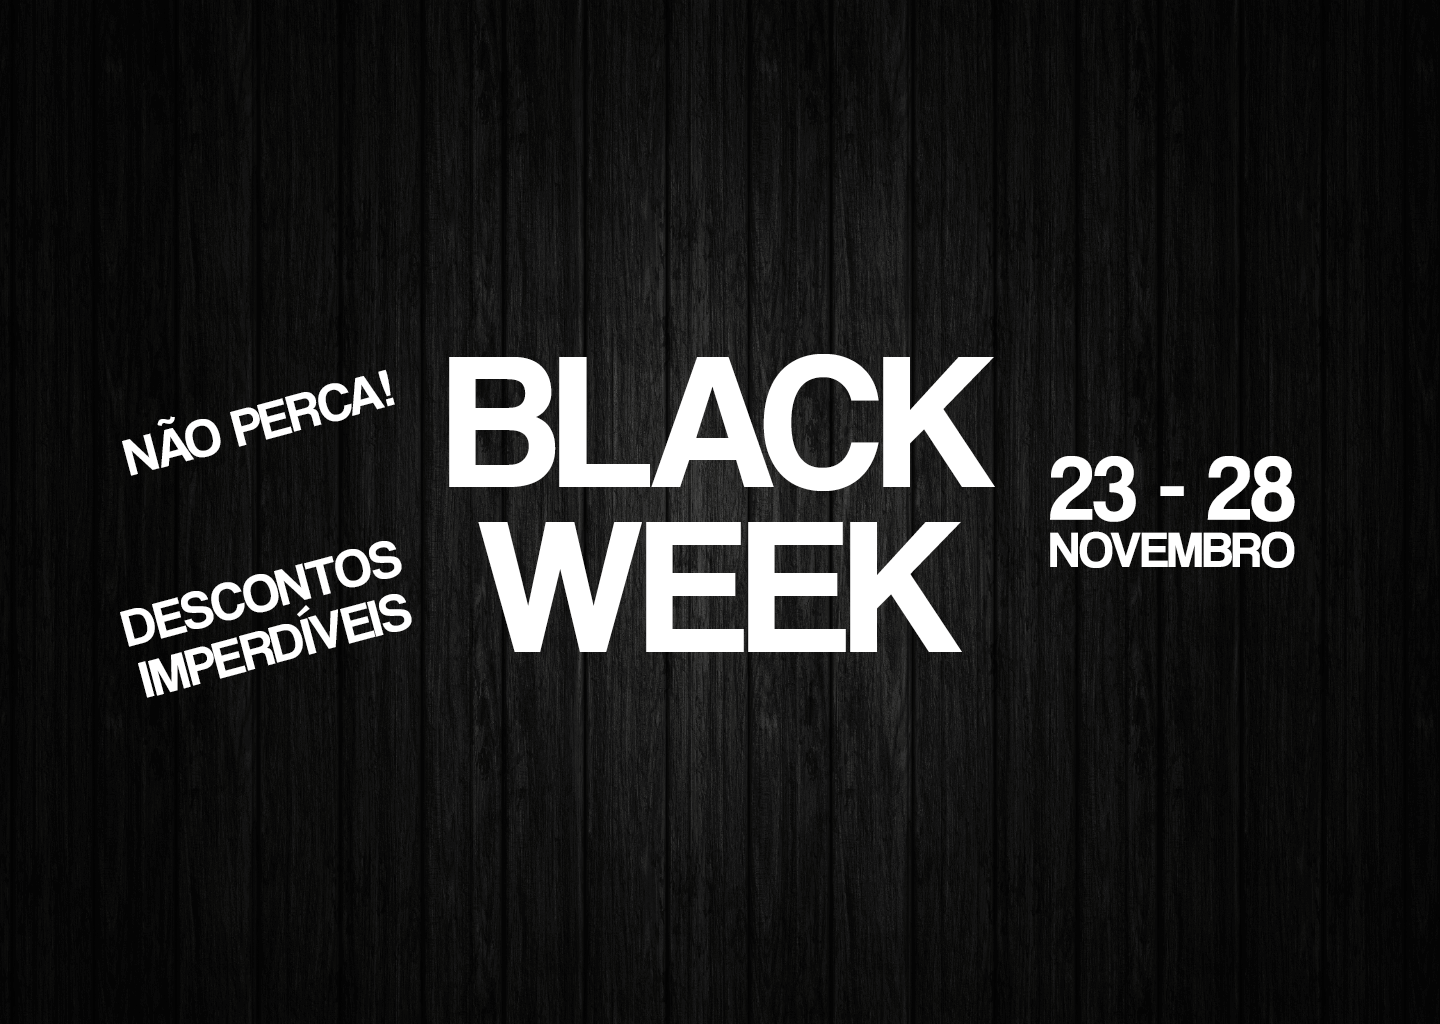 Black Week - Flor da Suissa